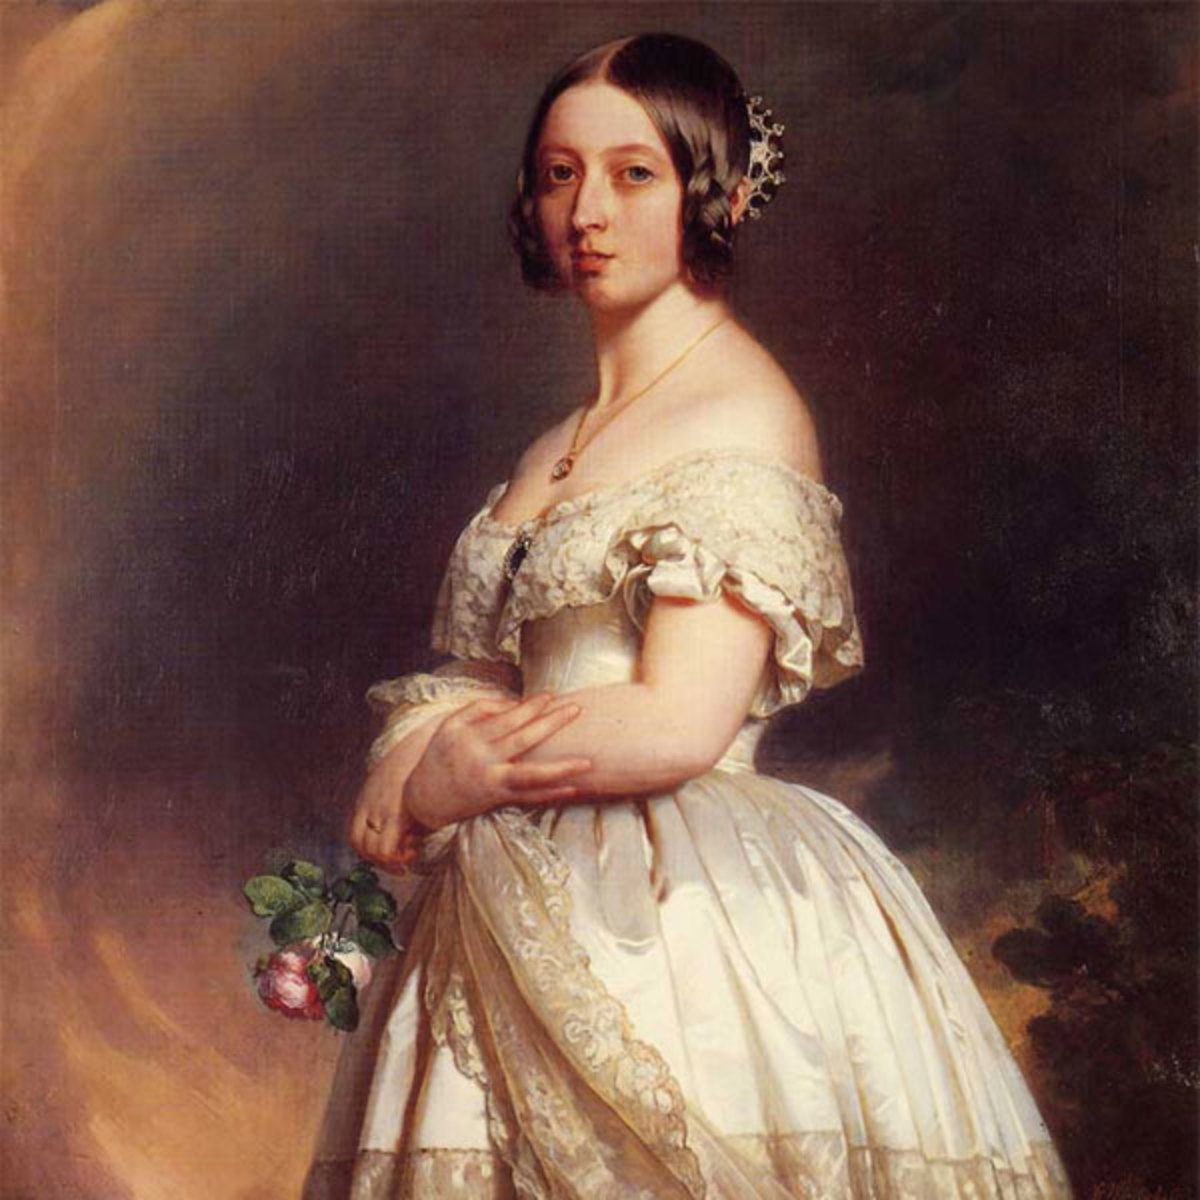 Queen Victoria At The Start Of Her 64-Year Reign.